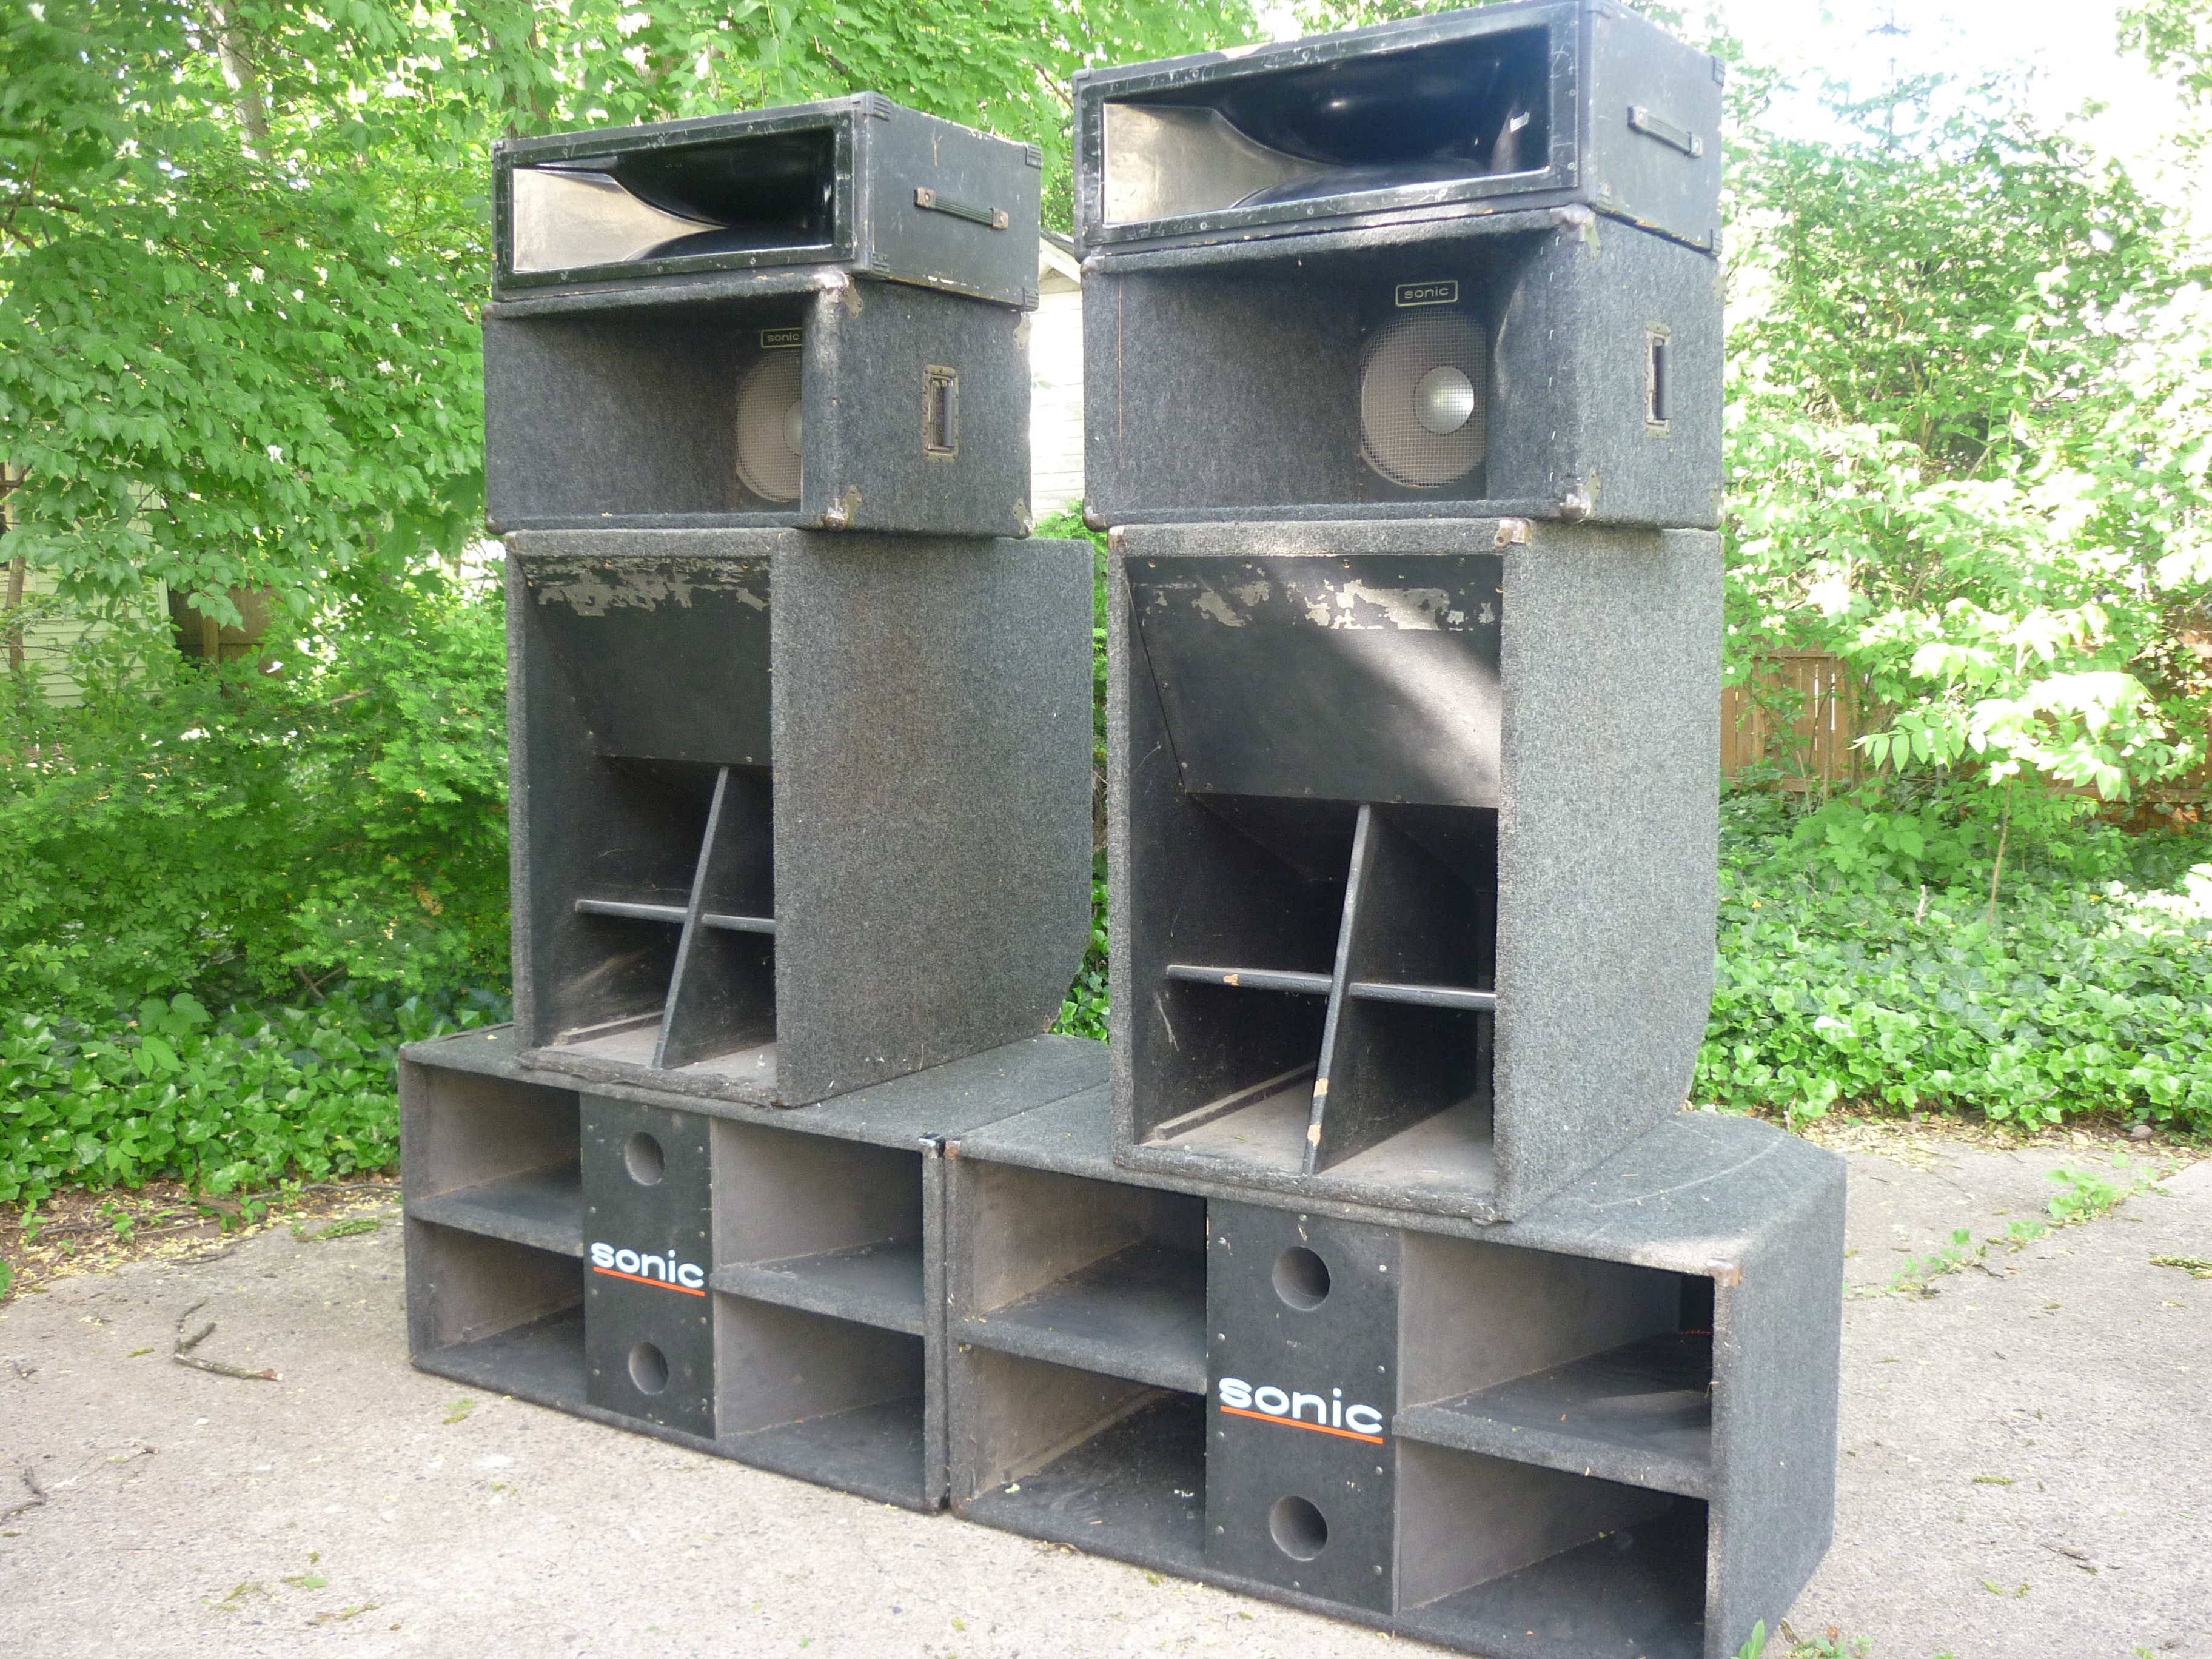 Dj Equipment In The Basment Or The Livingroom Me Vs The